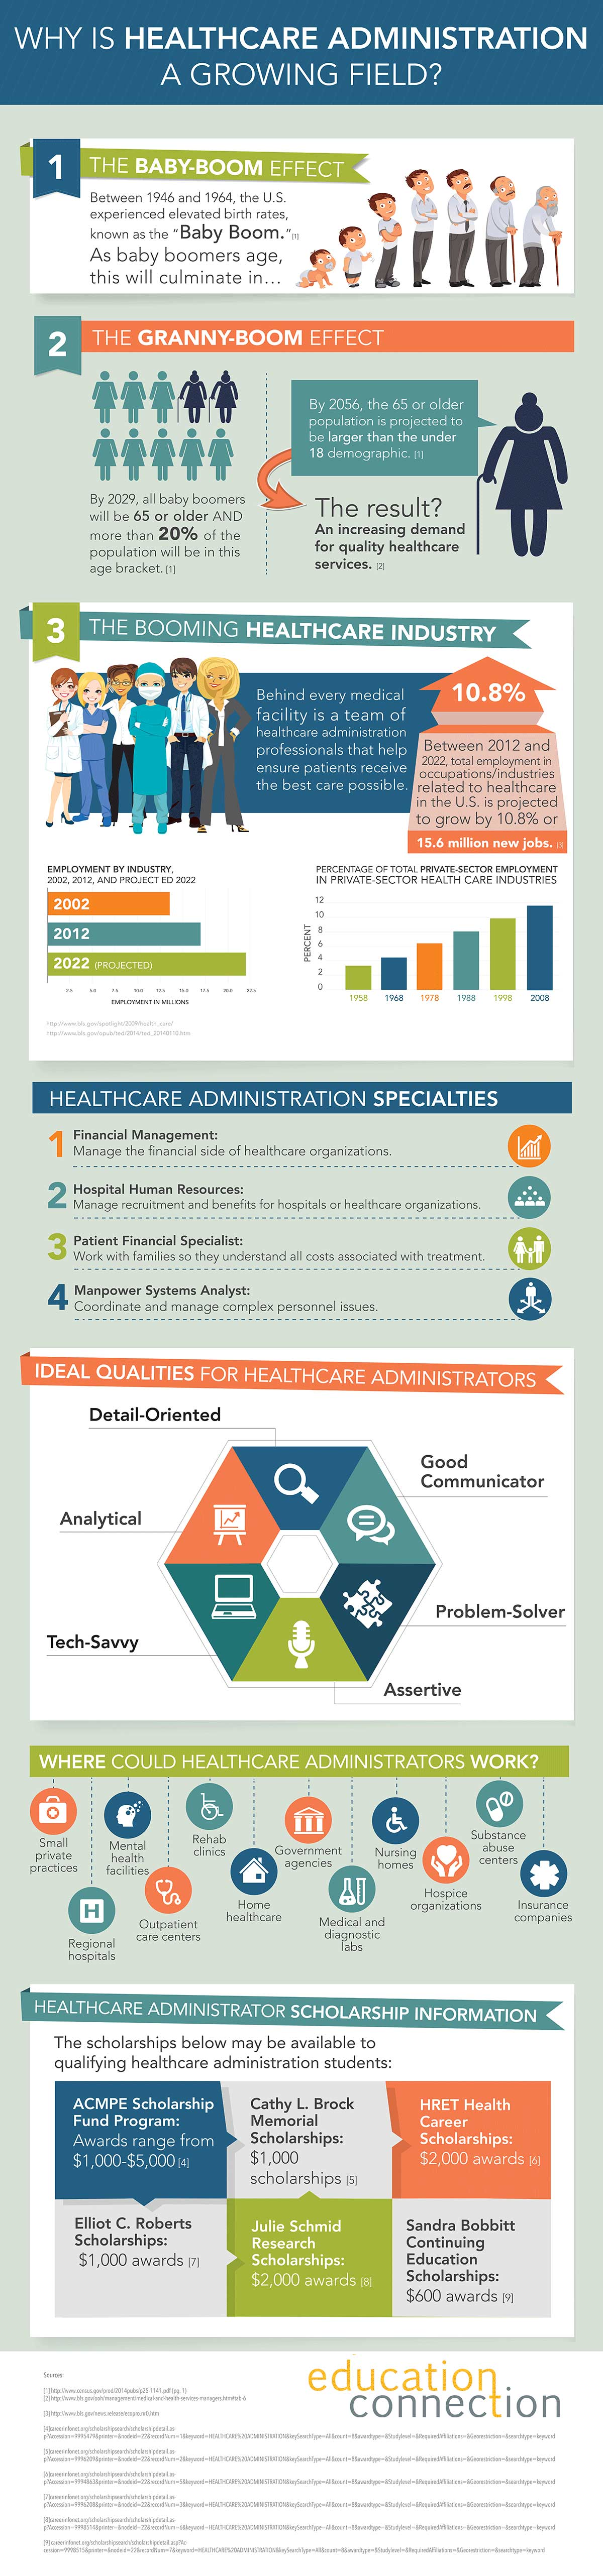 Healthcare Administration Job Outlook